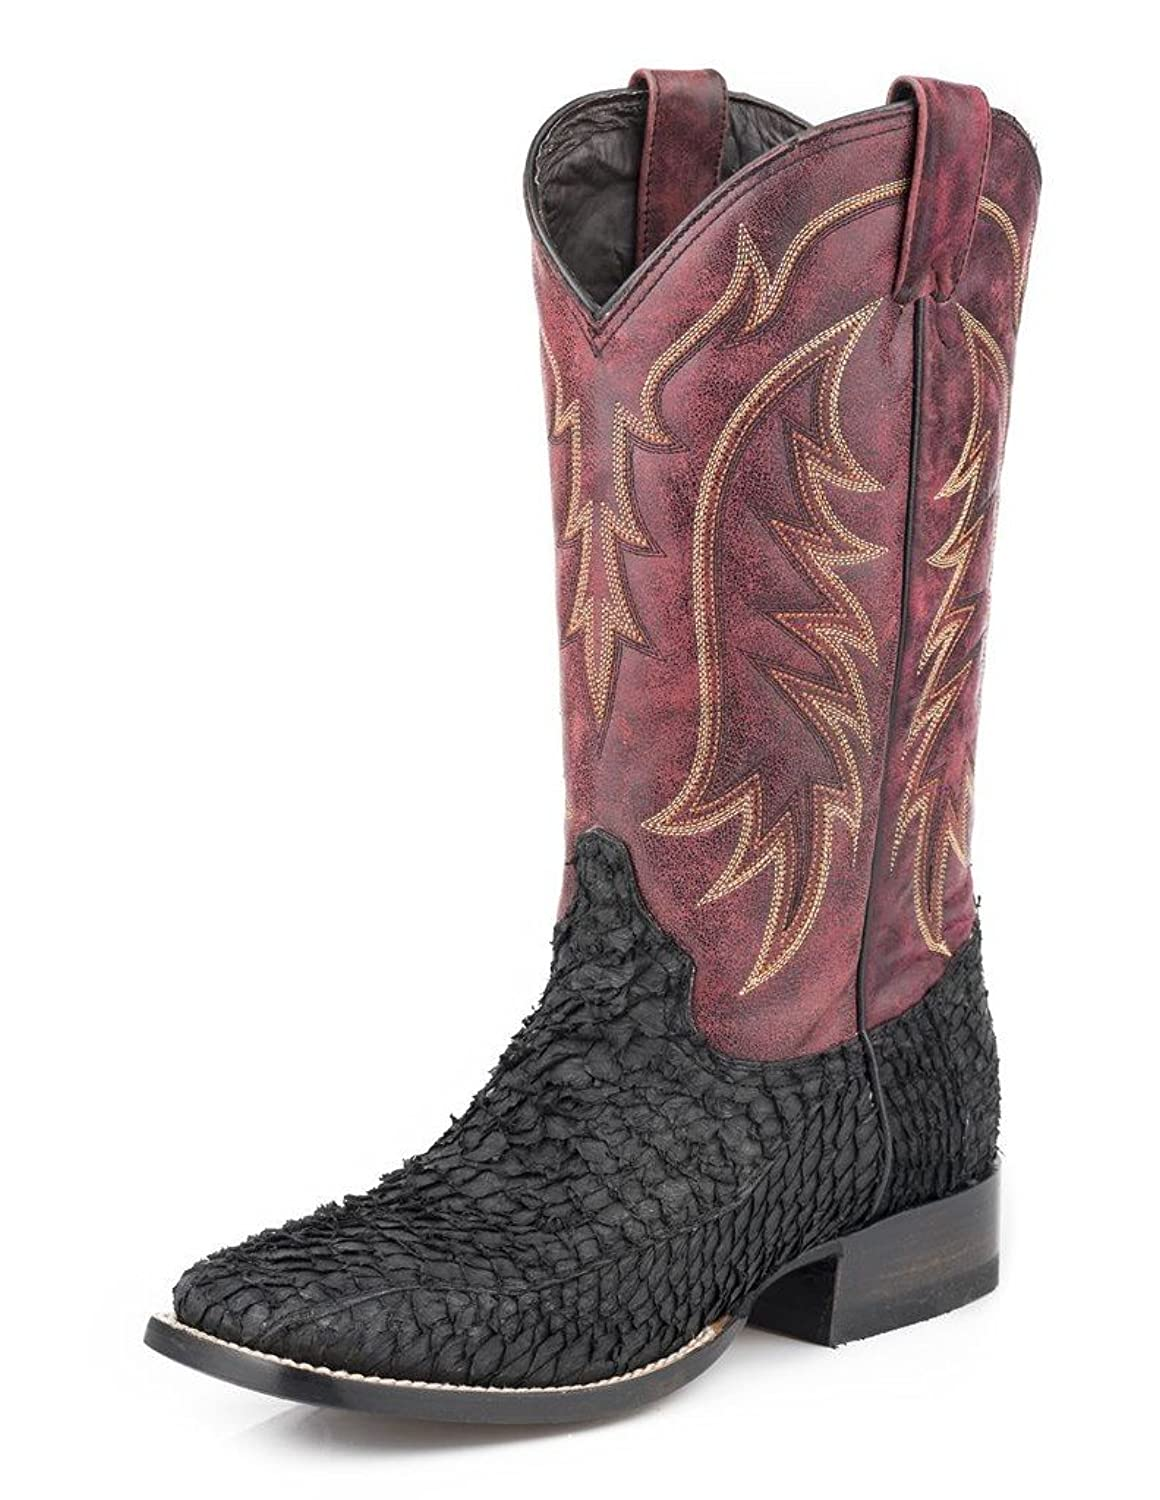 High quality stetson western boots mens fish scales black for Fish scale boots